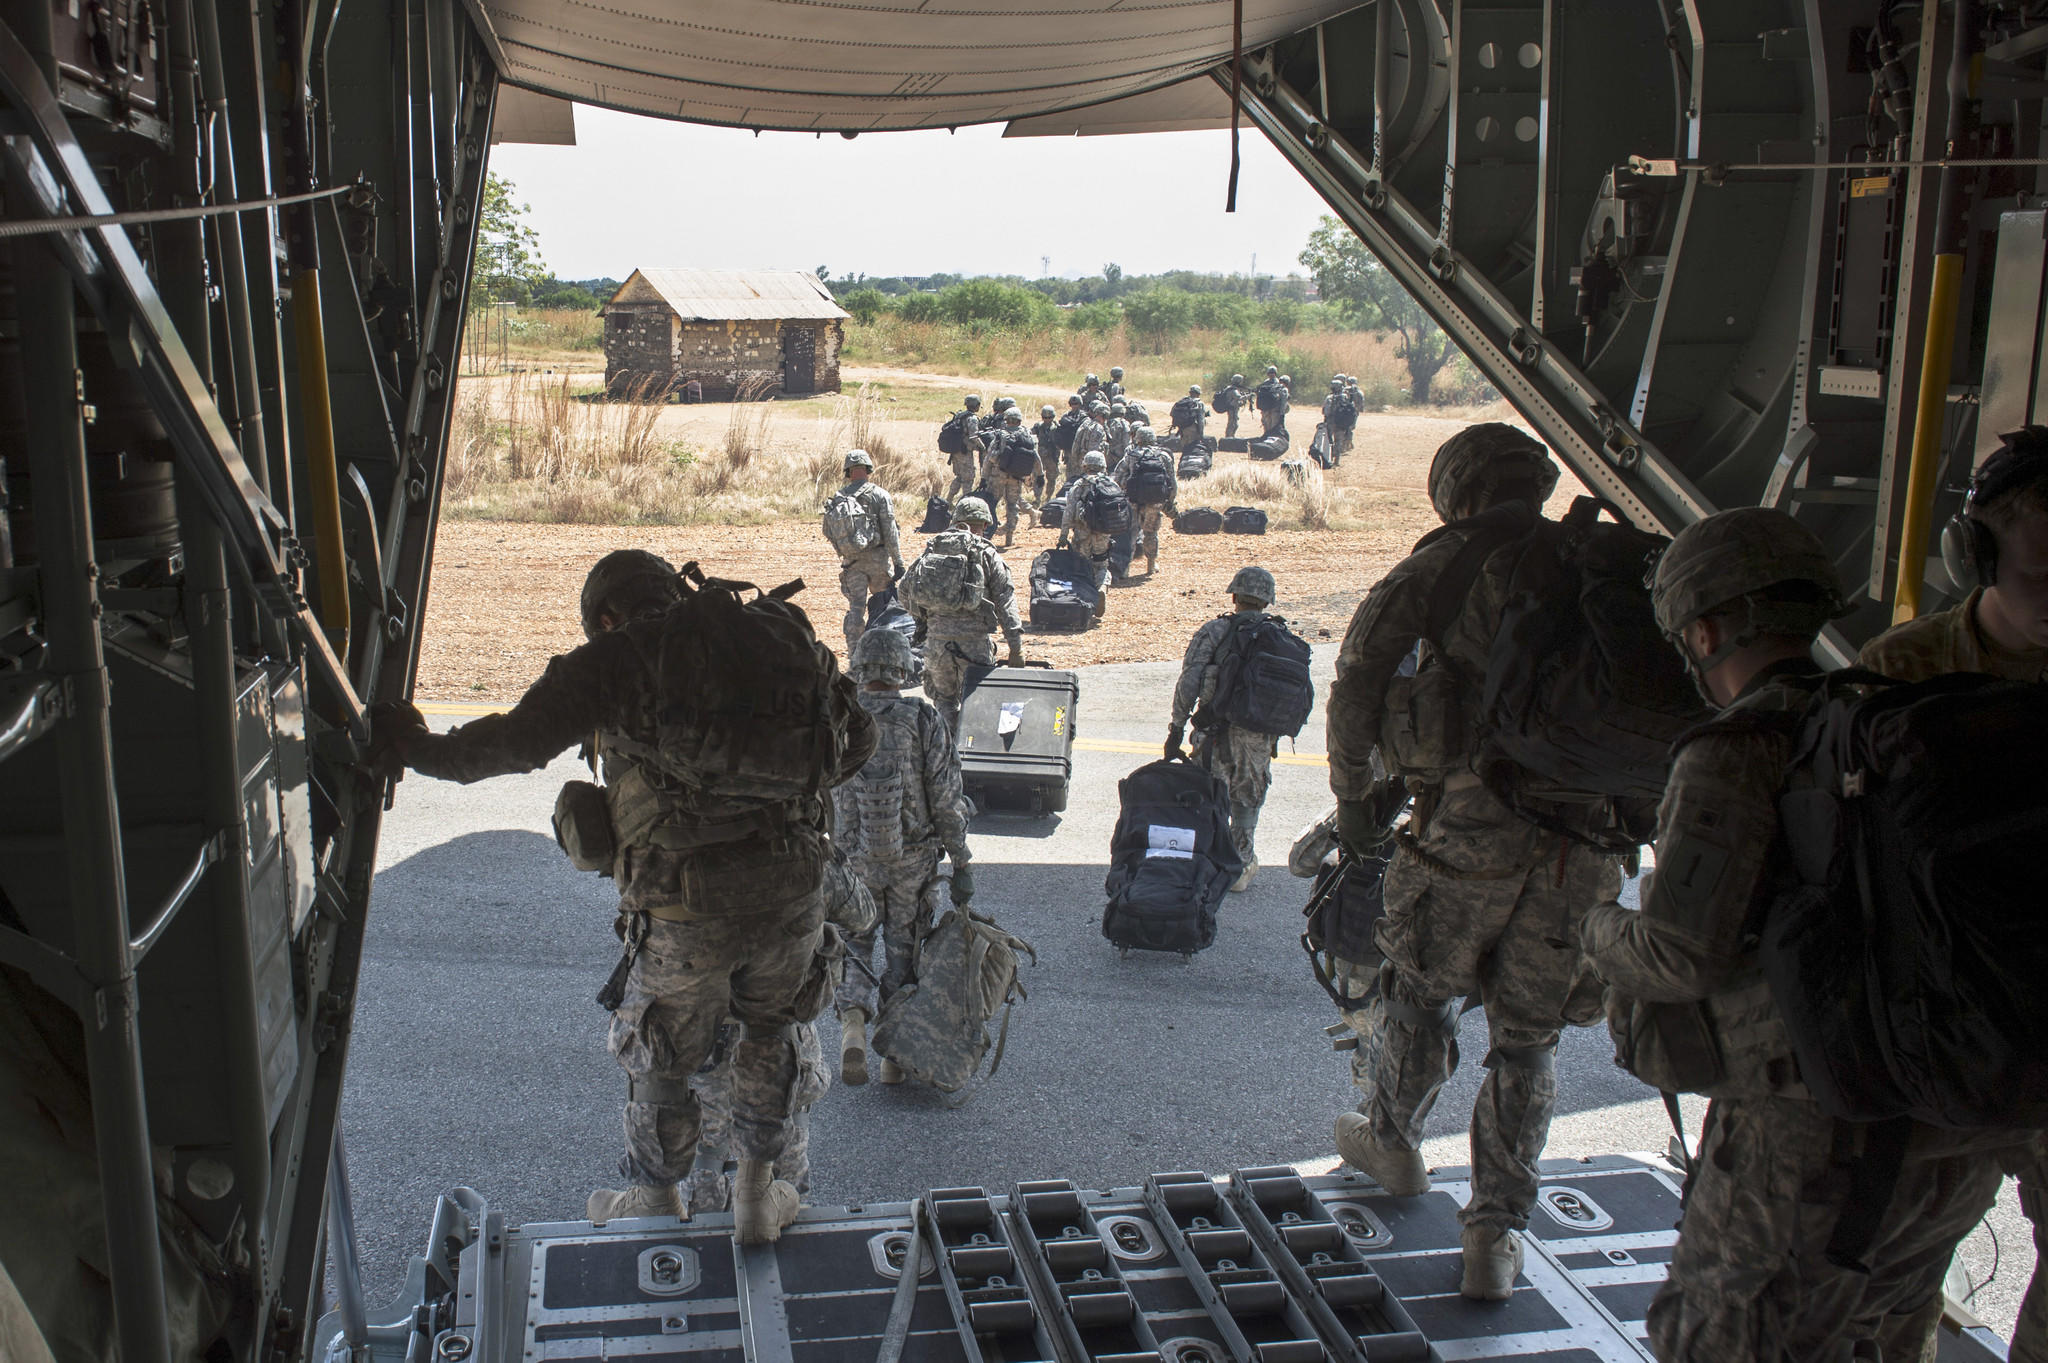 Members of the East Africa Response Force, a Djibouti-based joint team assigned to Combined Joint Task Force-Horn of Africa, disembark from a U.S. Air Force C-130 Hercules in Juba, South Sudan, to assist with evacuation of Americans.